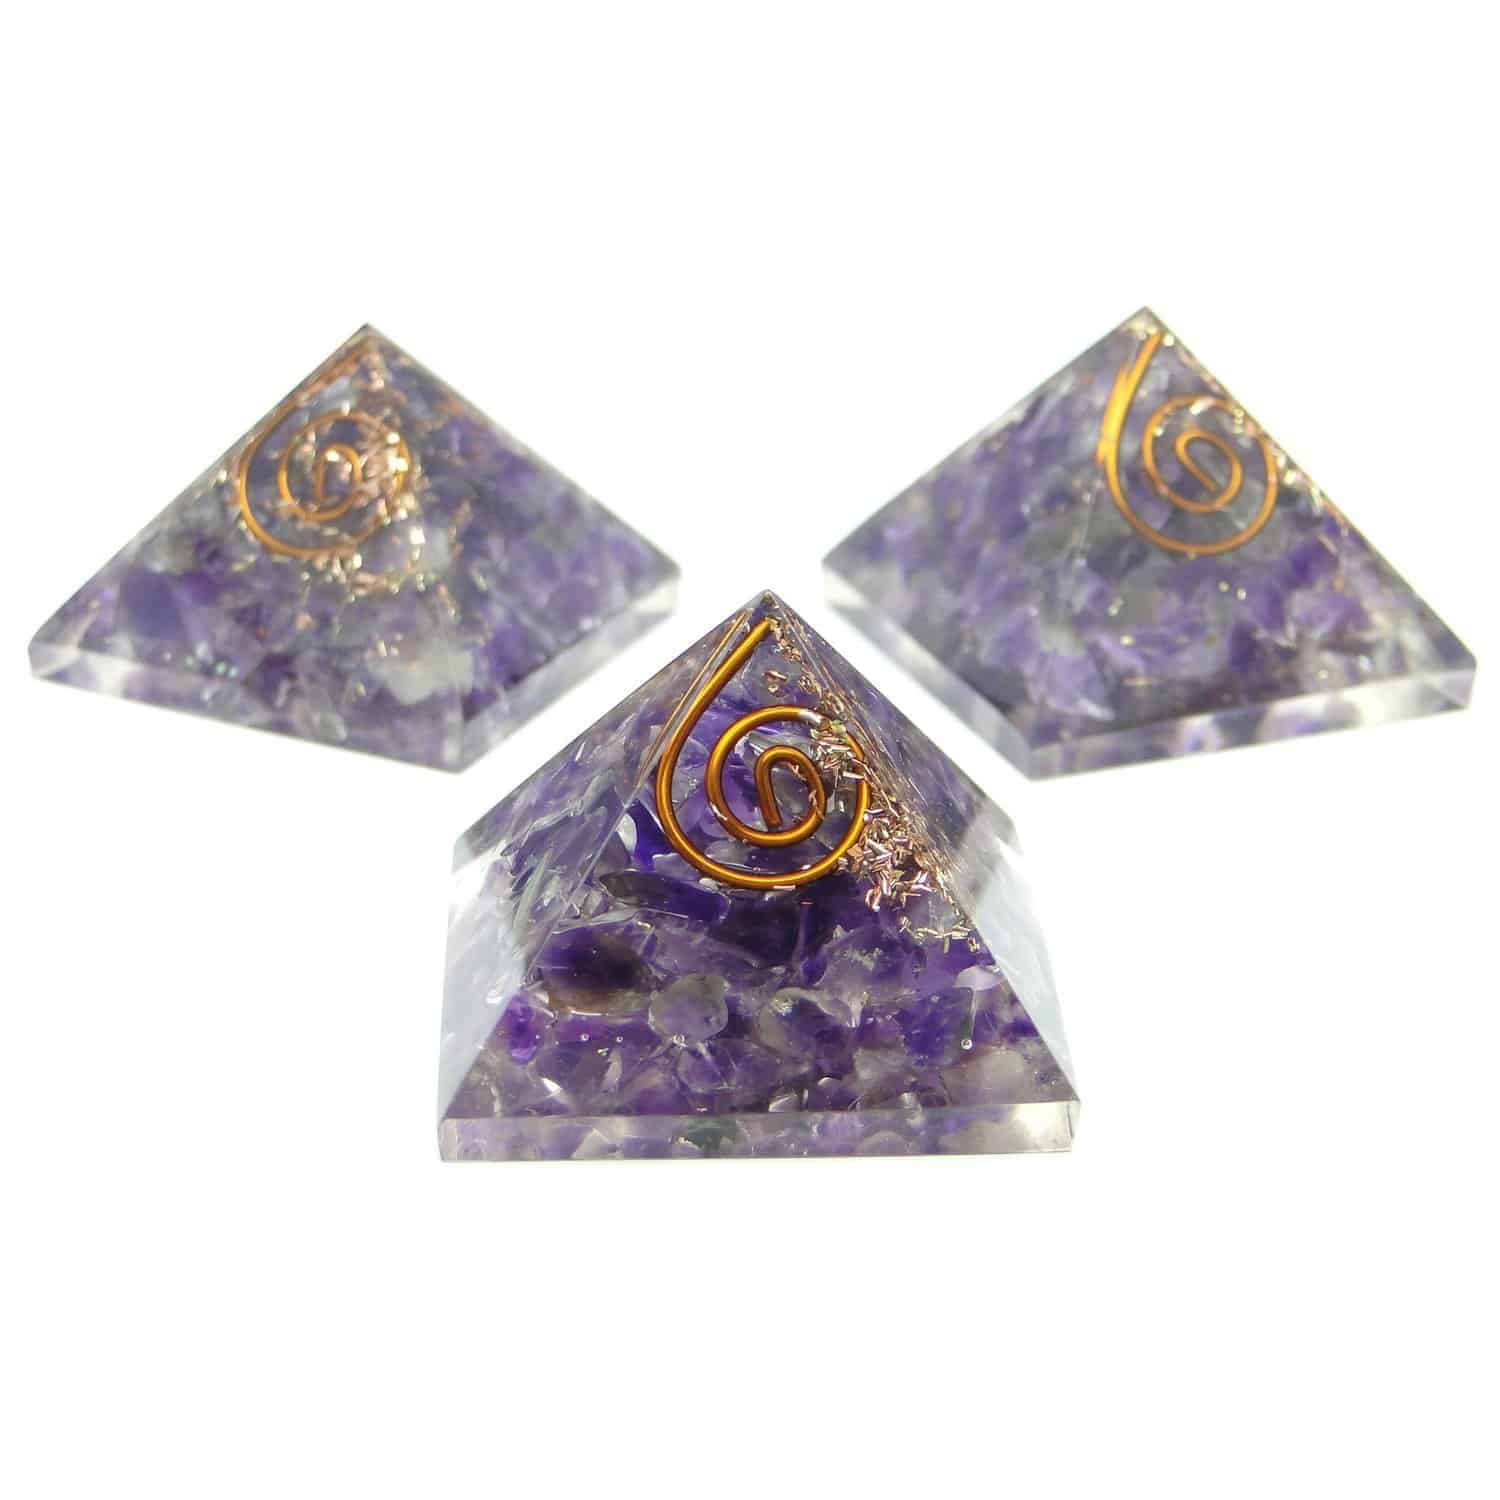 Amethyst Orgone Pyramid Nature's Crest OPY001 ₹ 299.00